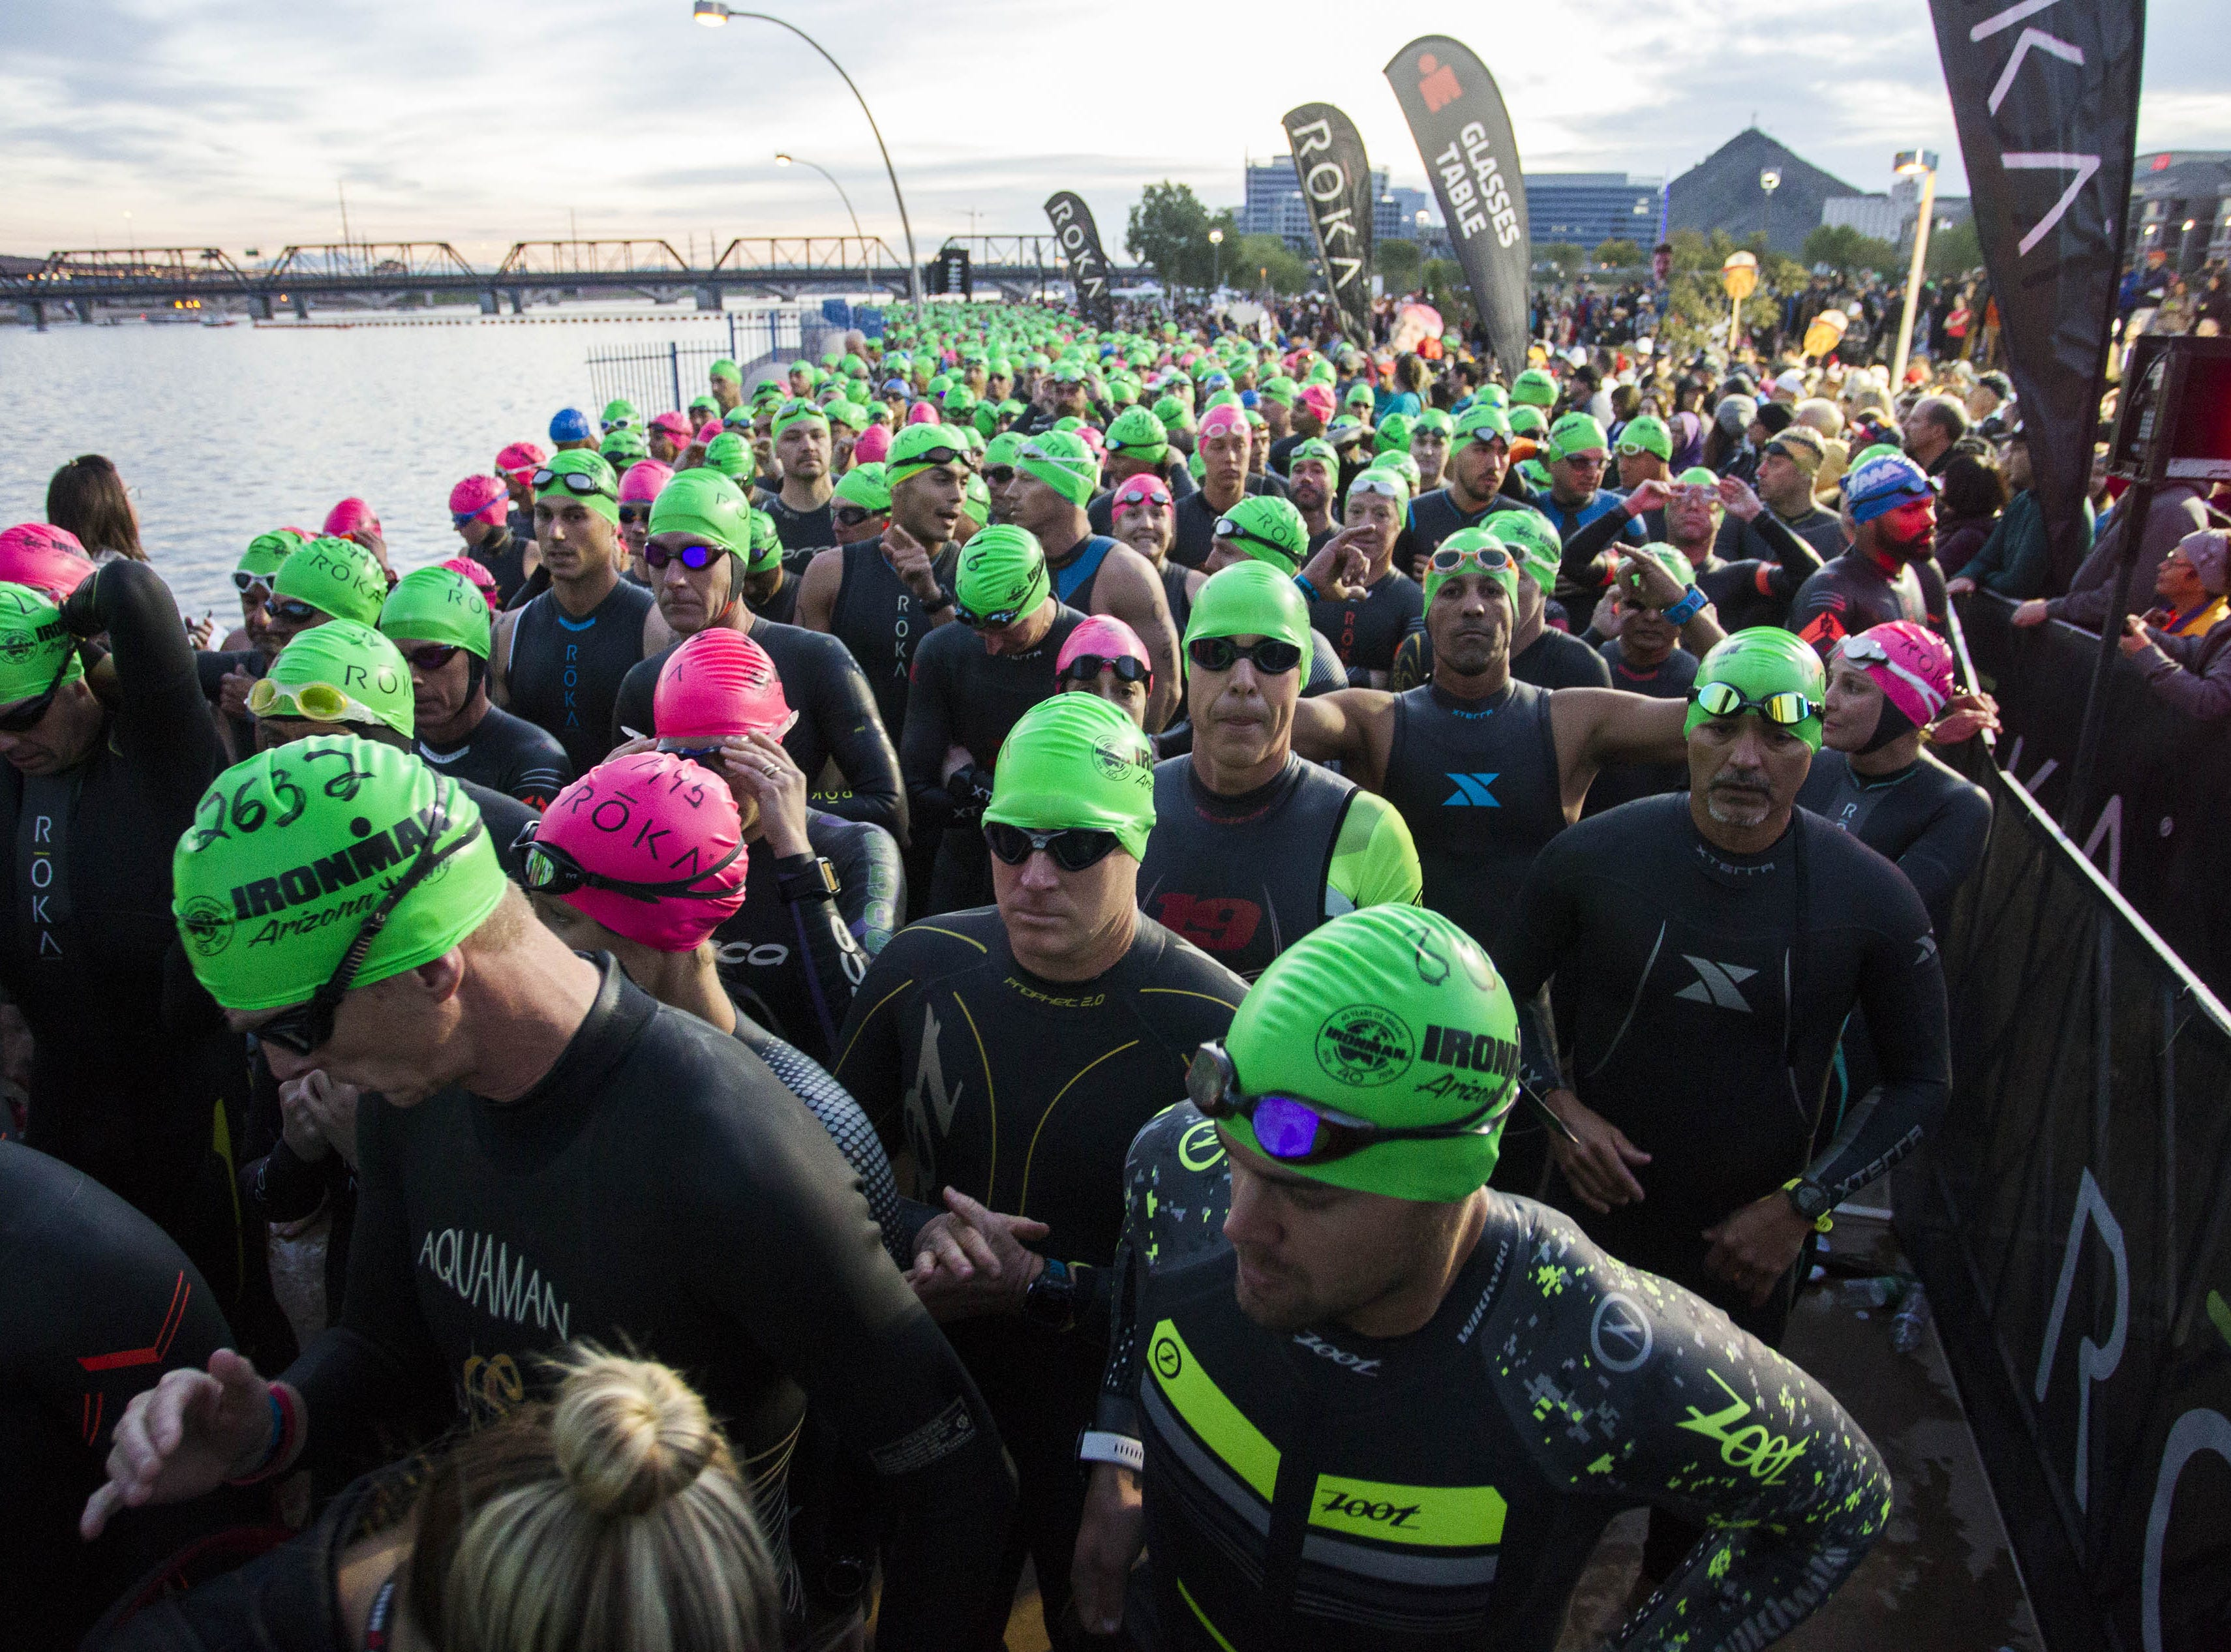 Athletes wait to start their swim during the Tempe Ironman competition at Tempe Town Lake Nov.18, 2018.